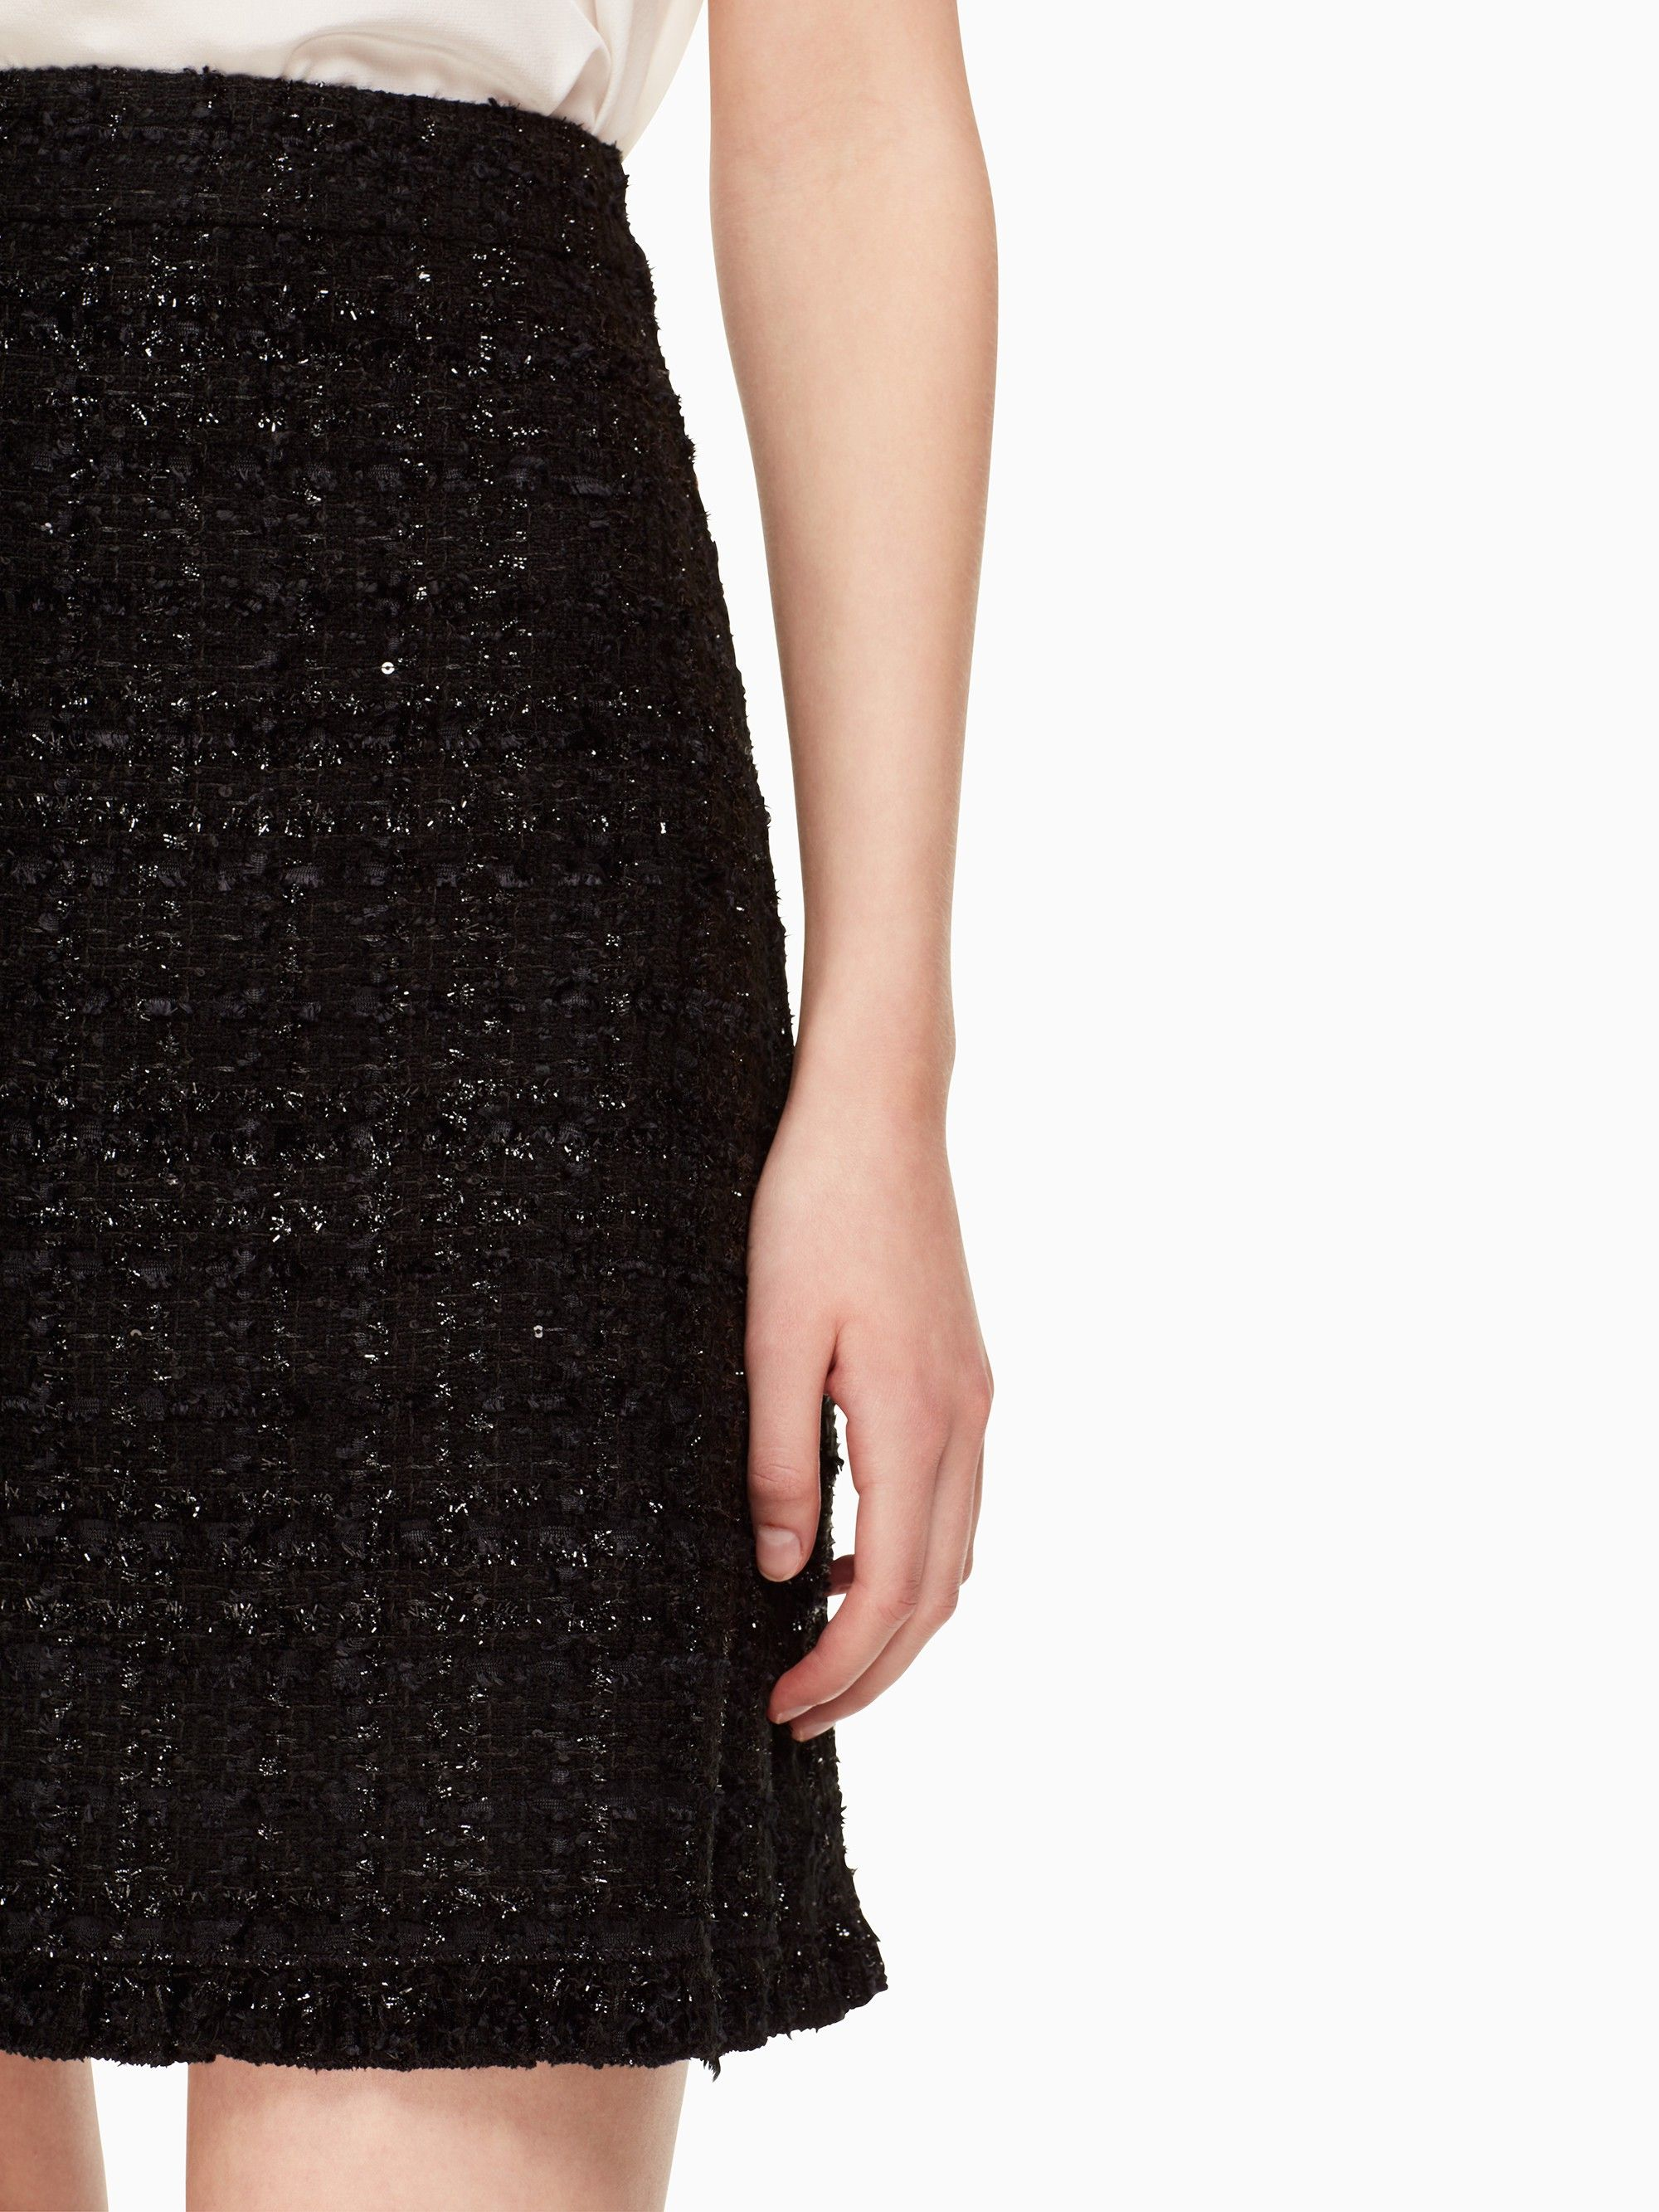 edd1ee115a5c76 Kate Spade Sparkle Tweed Skirt - 14 | Products | Tweed skirt, Skirts ...